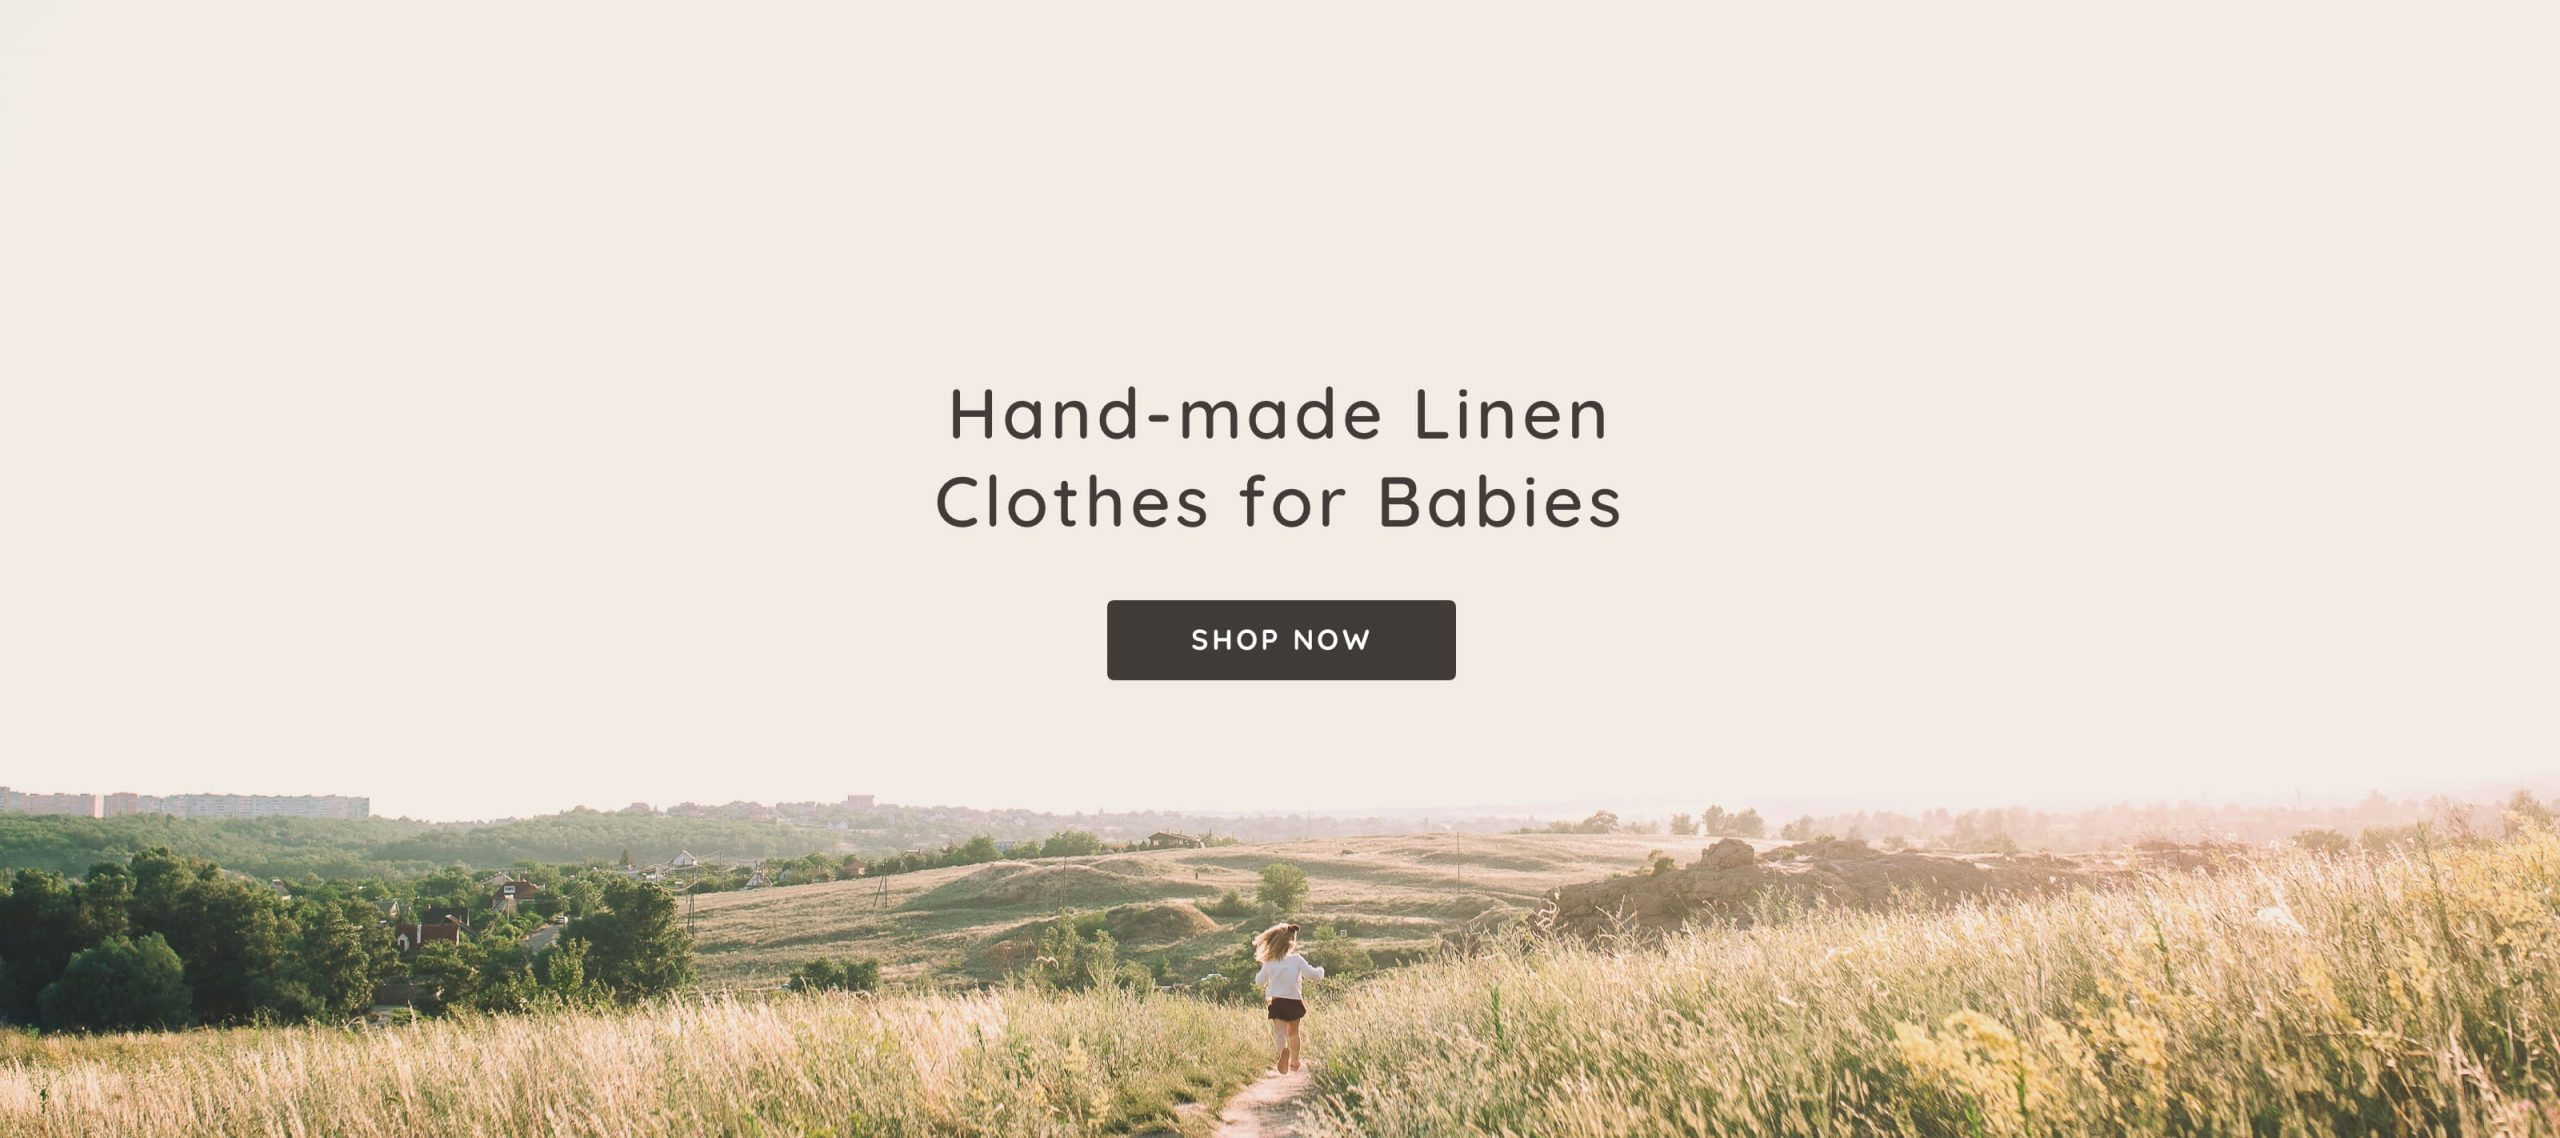 handmade-linen-clothes-for-babies-home